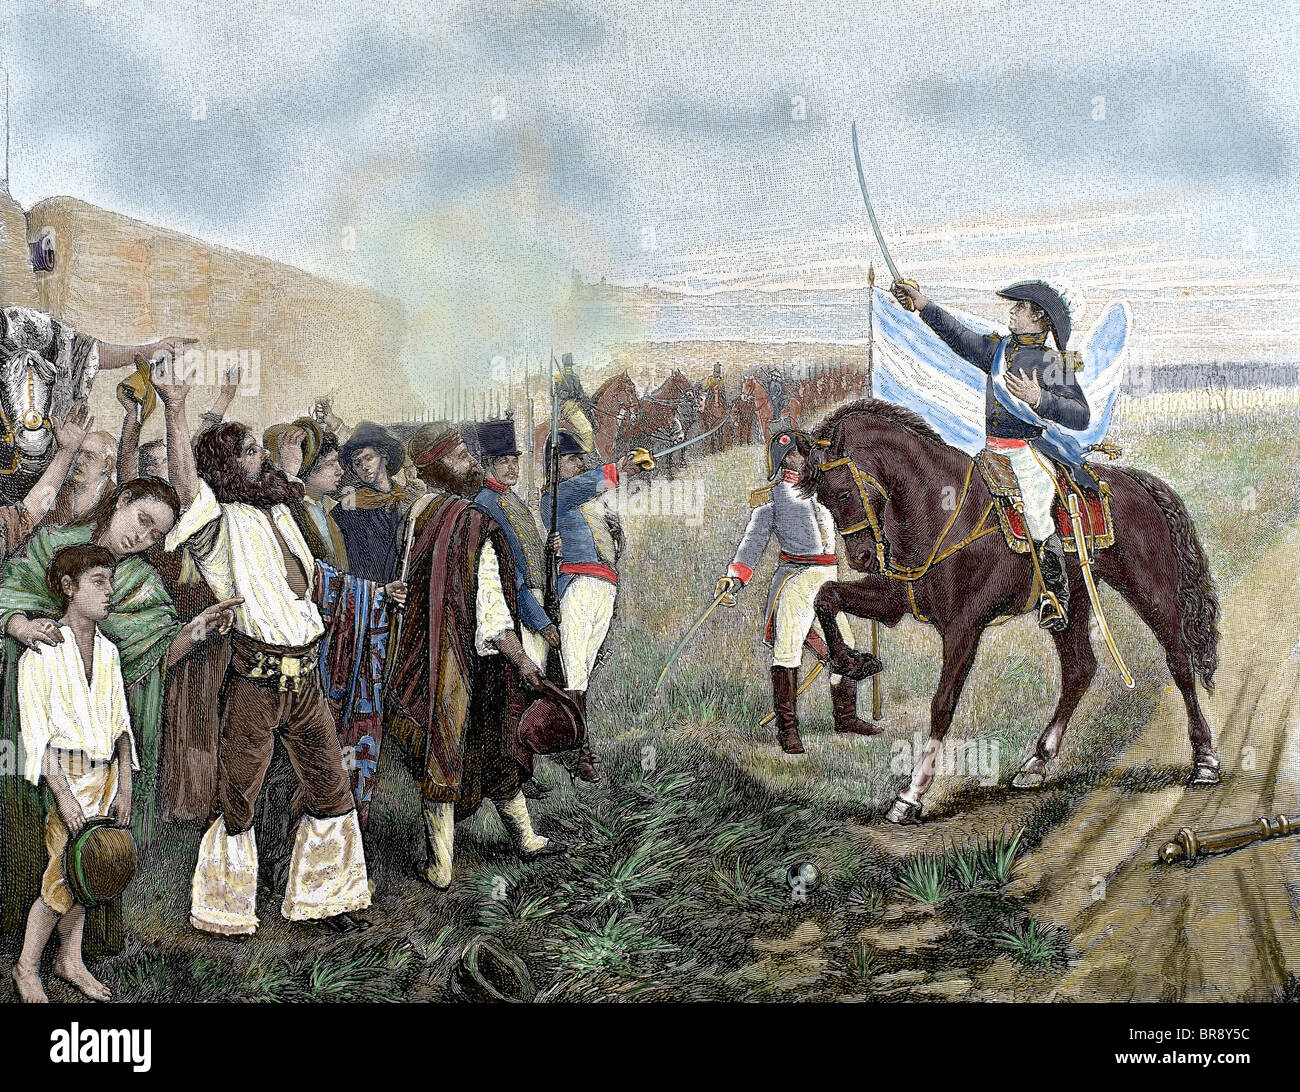 The first flag of Argentina presented to the revolutionary army by General Belgrano on February 27, 1812. - Stock Image